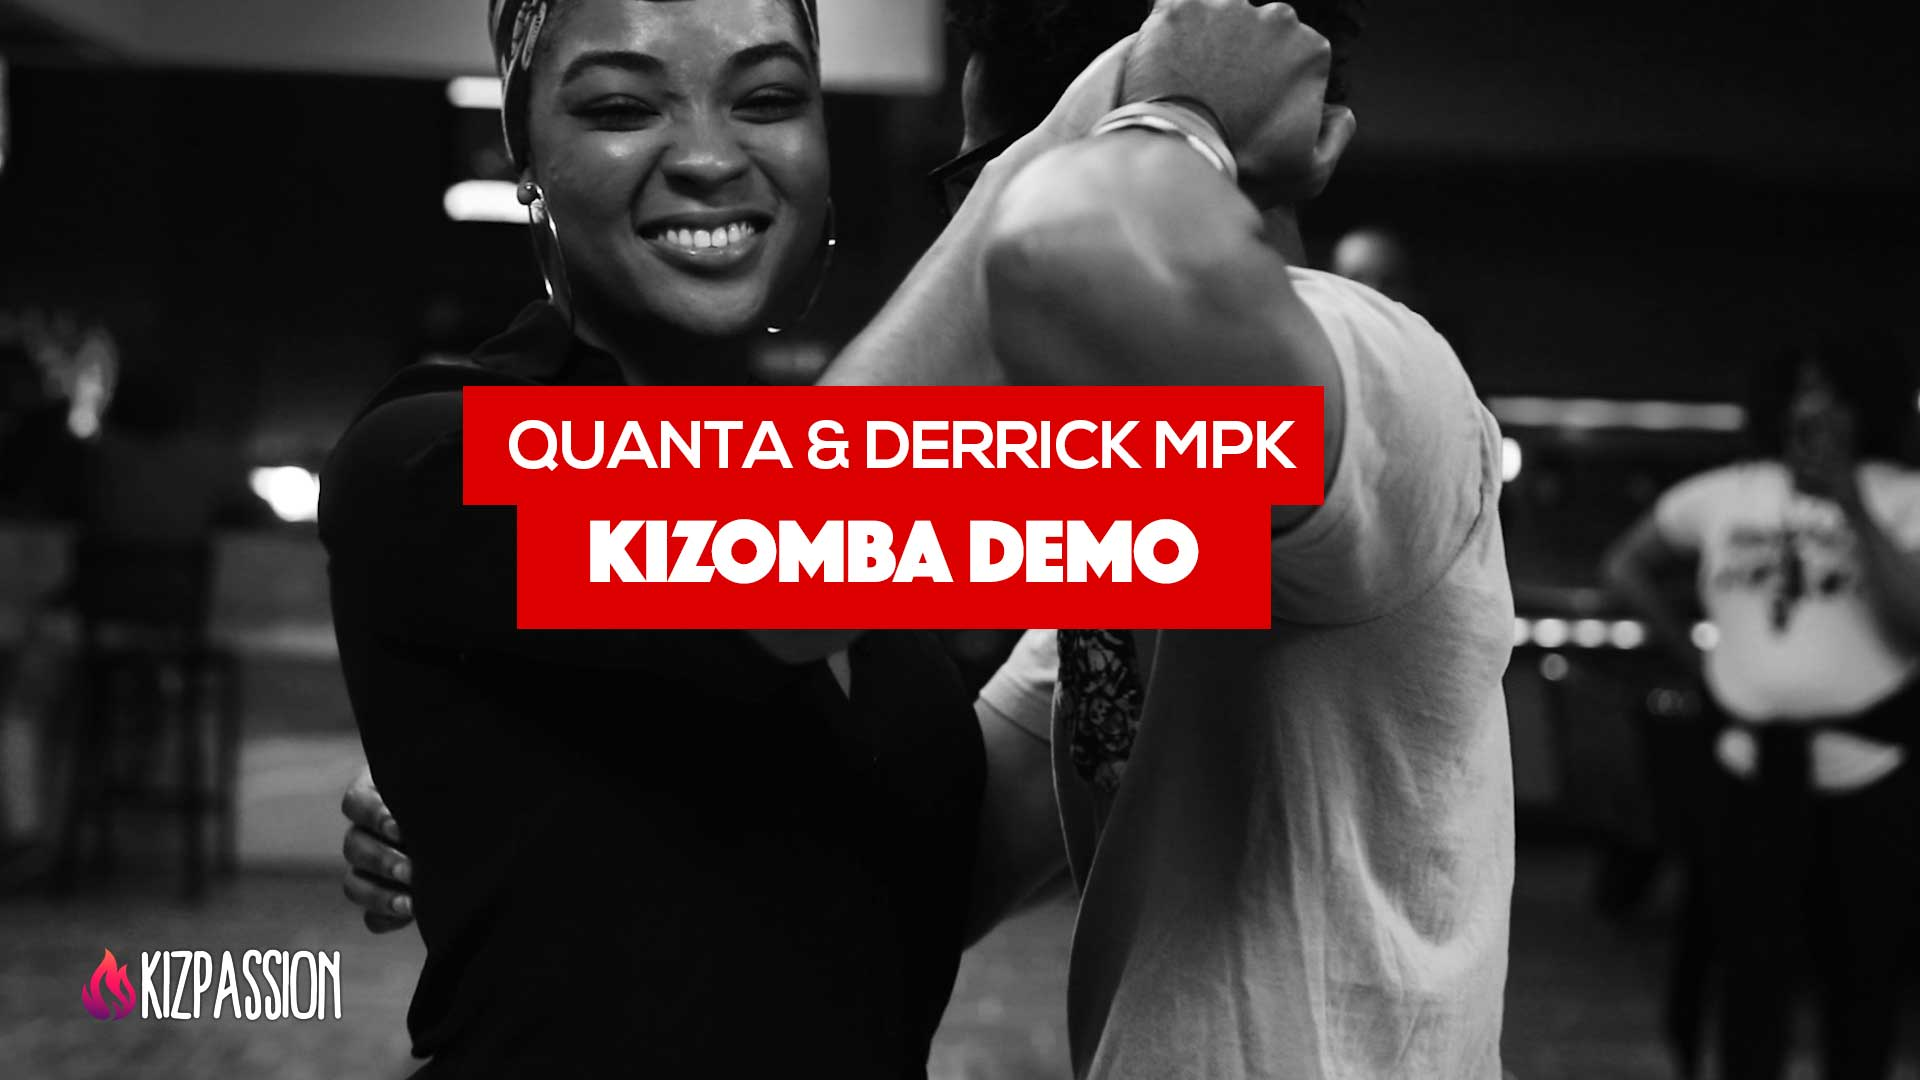 Derrick MPK & Quanta MPK Kizomba Demo in Dallas